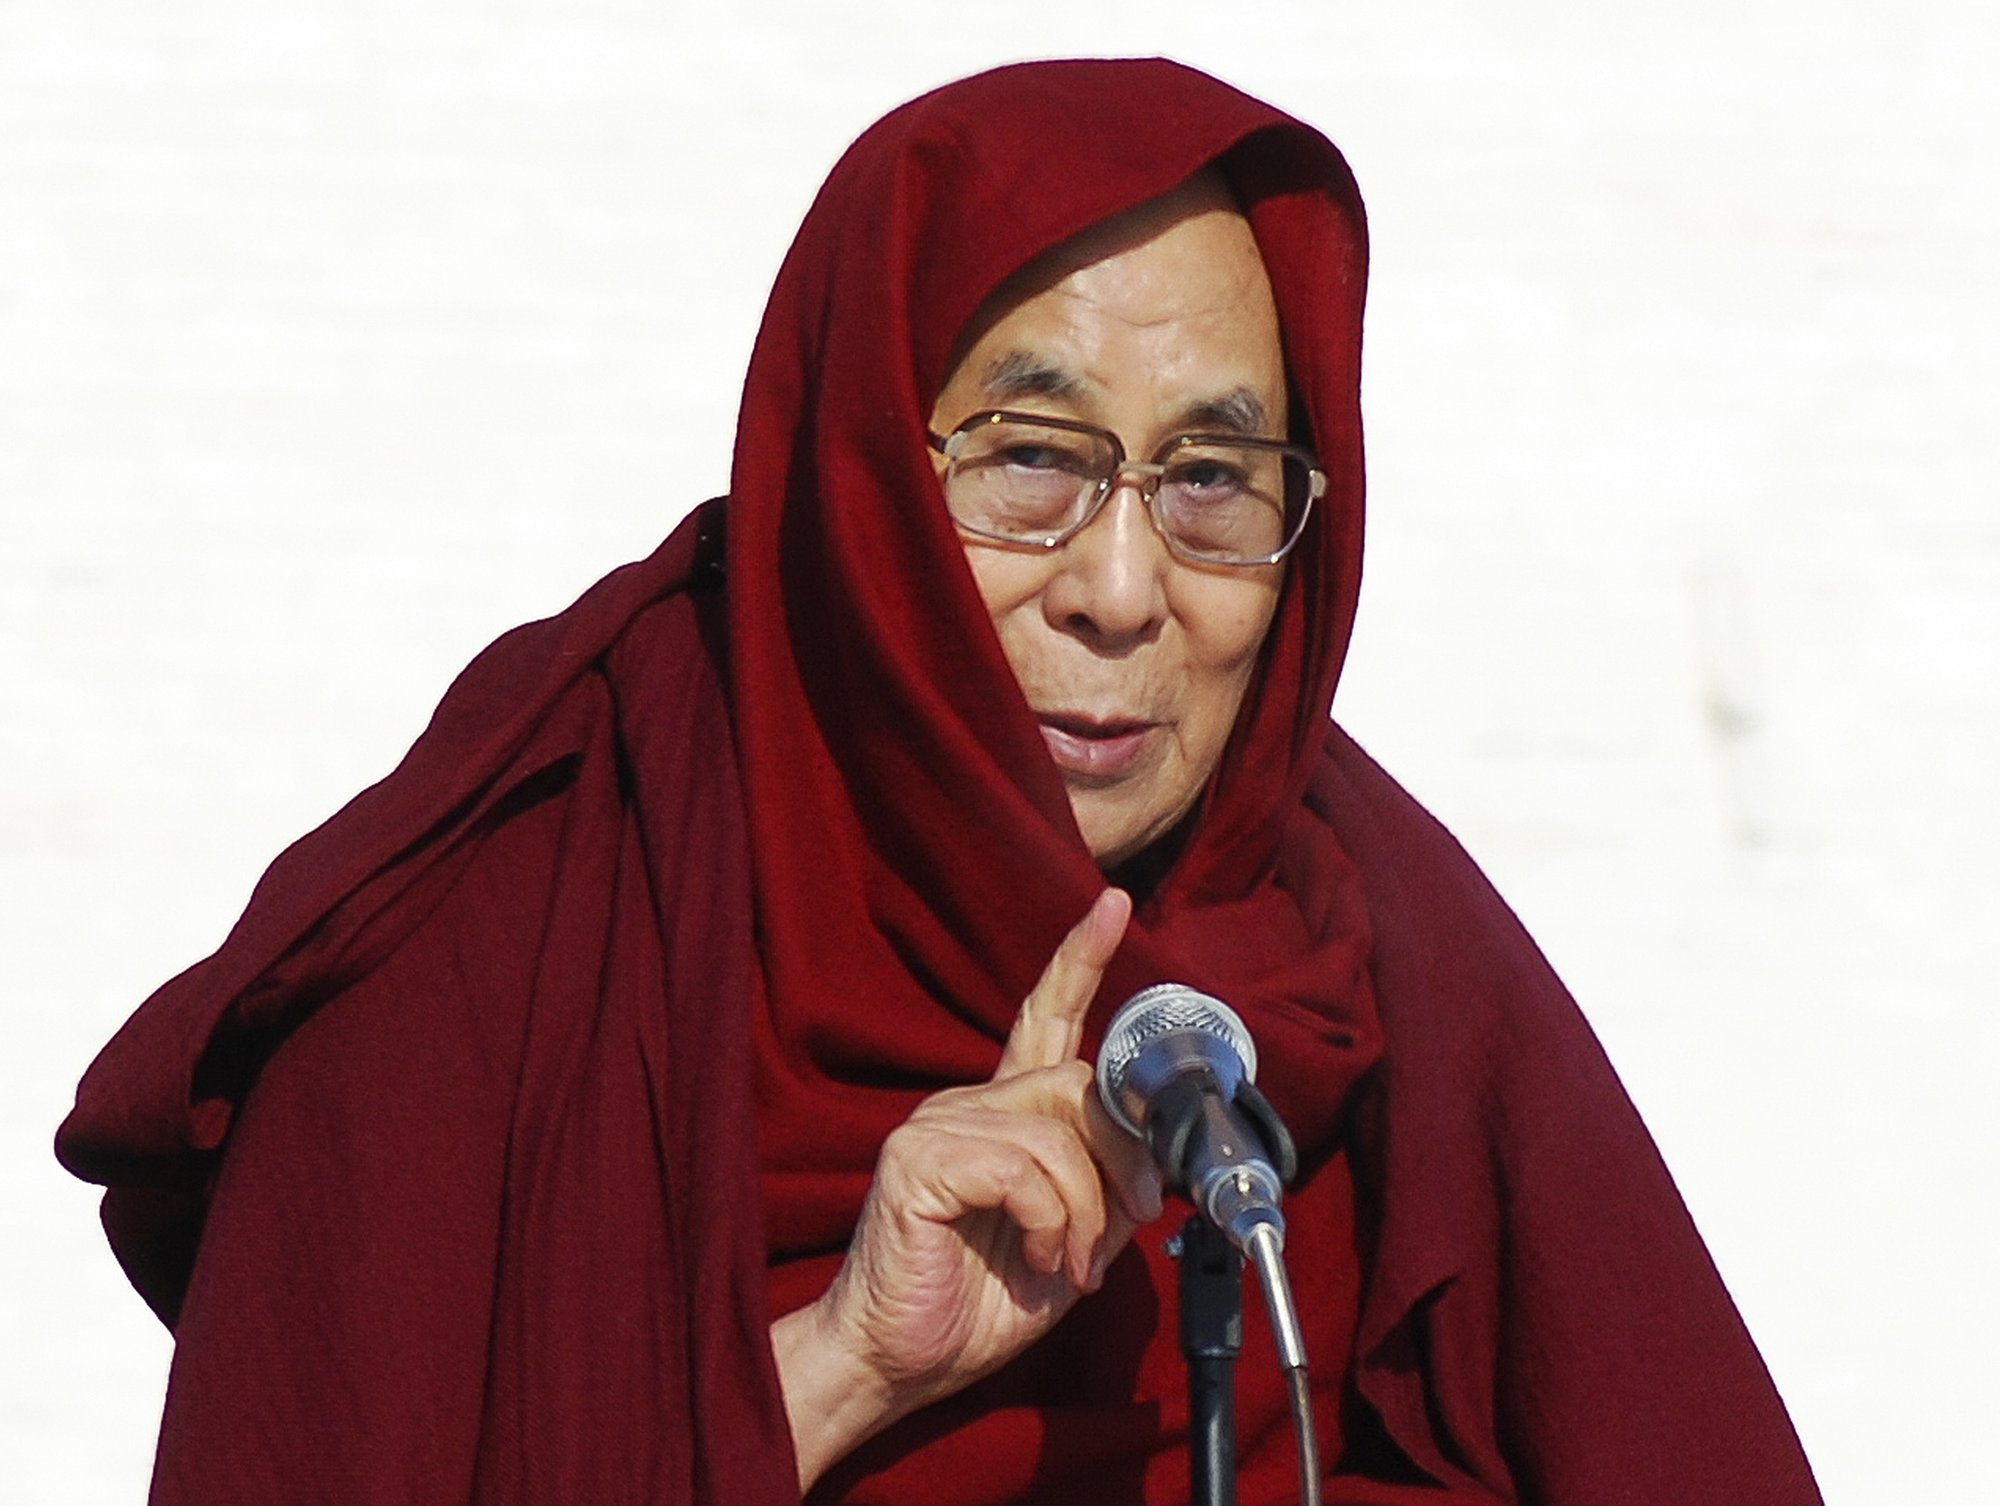 Dalai Lama: 'I have no worries' about Trump's election